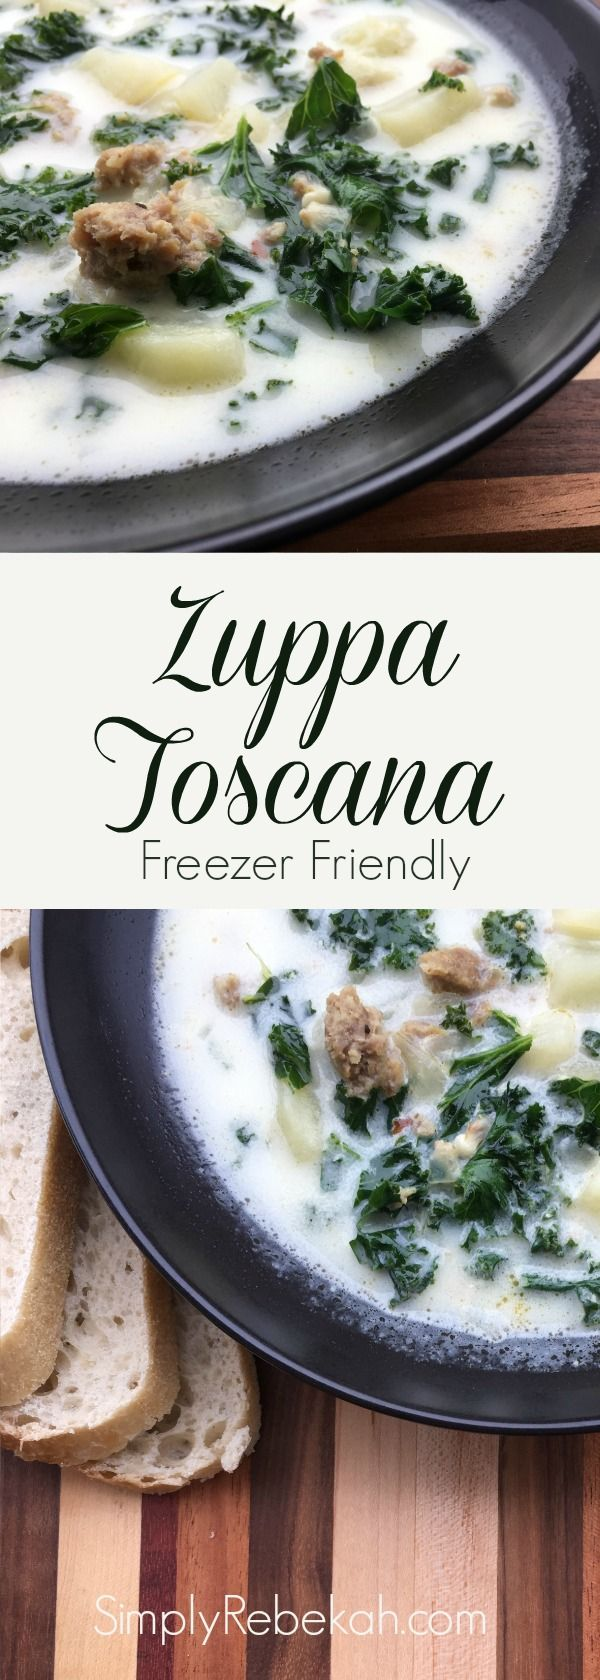 Freezer Friendly: Zuppa Toscana Soup #zuppatoscanasoup